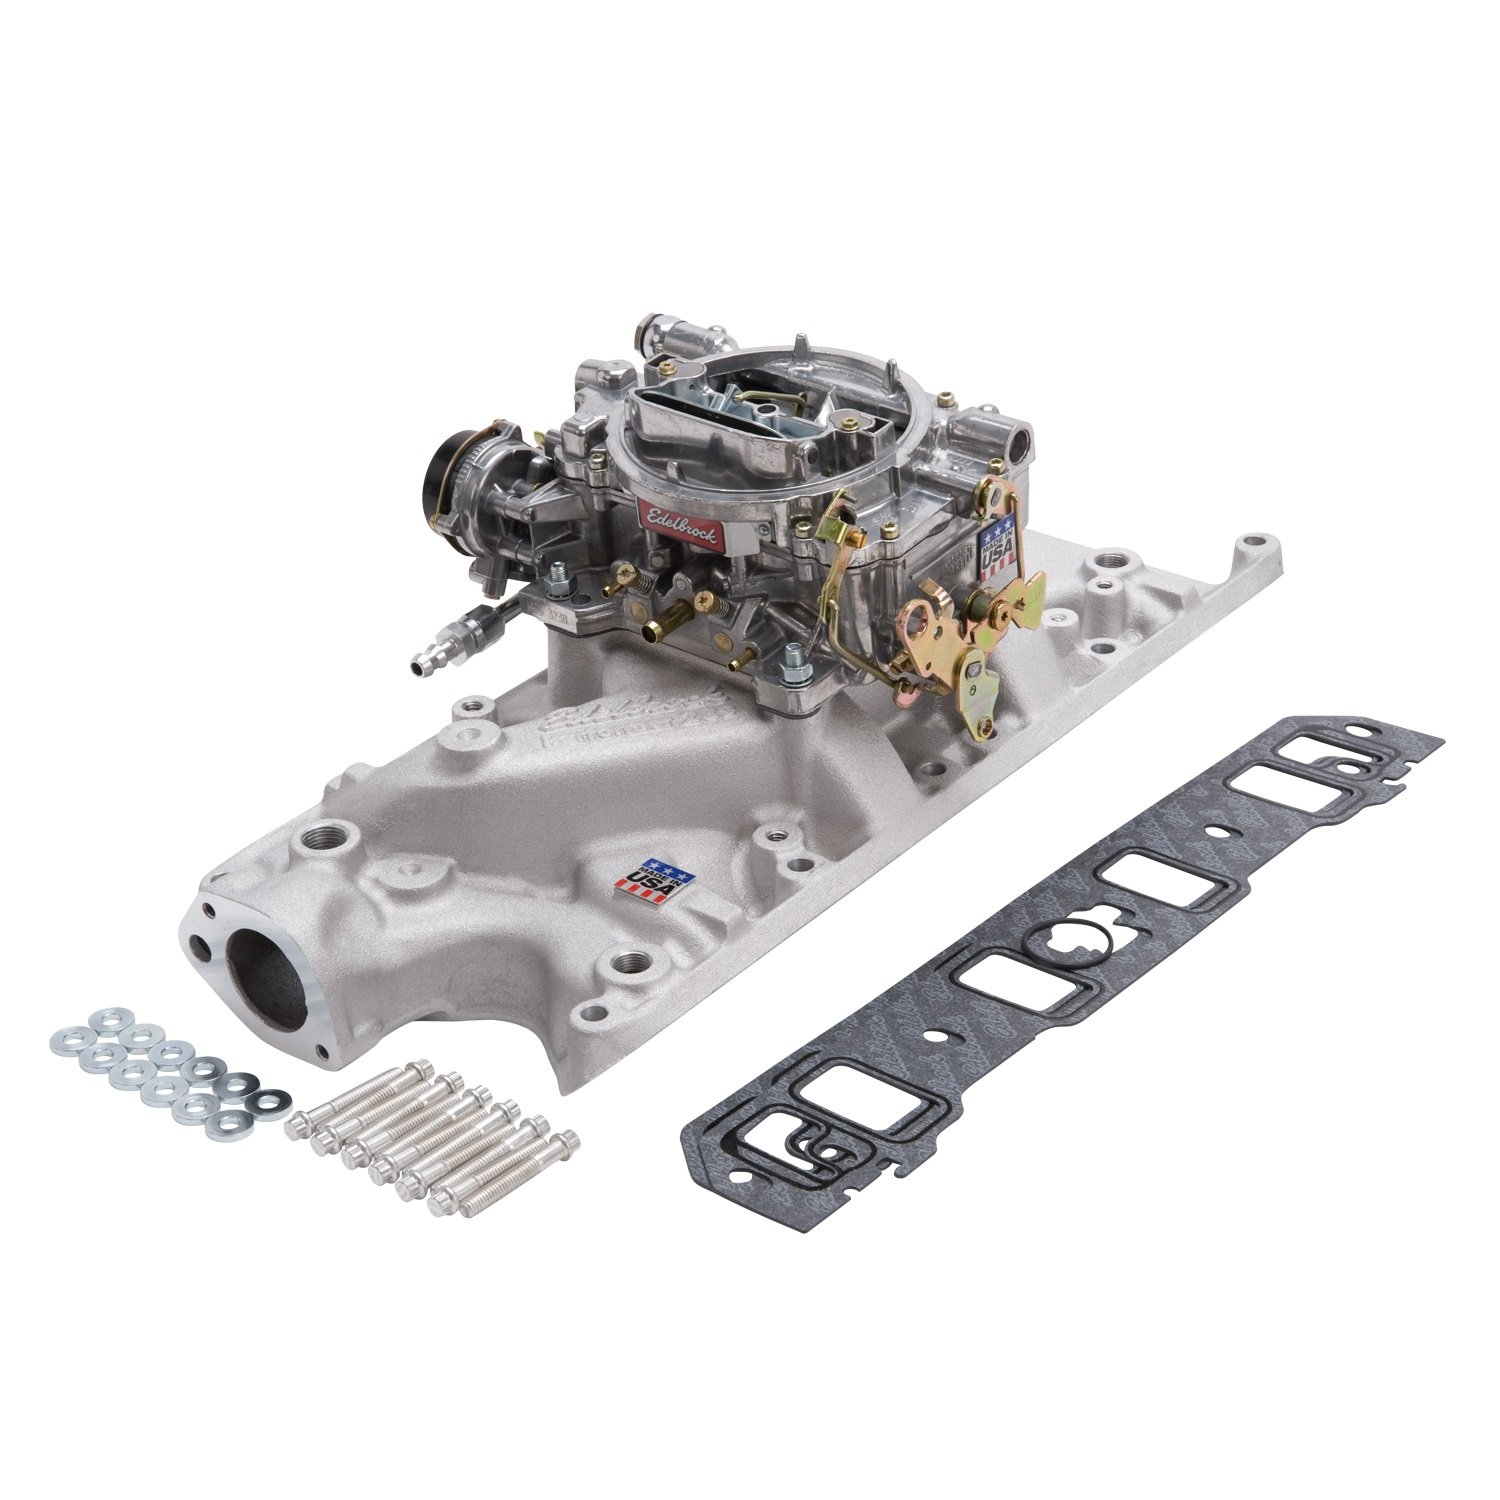 Edelbrock 2031 Single-Quad Manifold And Carb Kit For Performer Manifold w/600cfm Performer Series Carb Incl. Carb/Fuel Line/Intake Bolts/Gaskets Satin Finish Single-Quad Manifold And Carb Kit